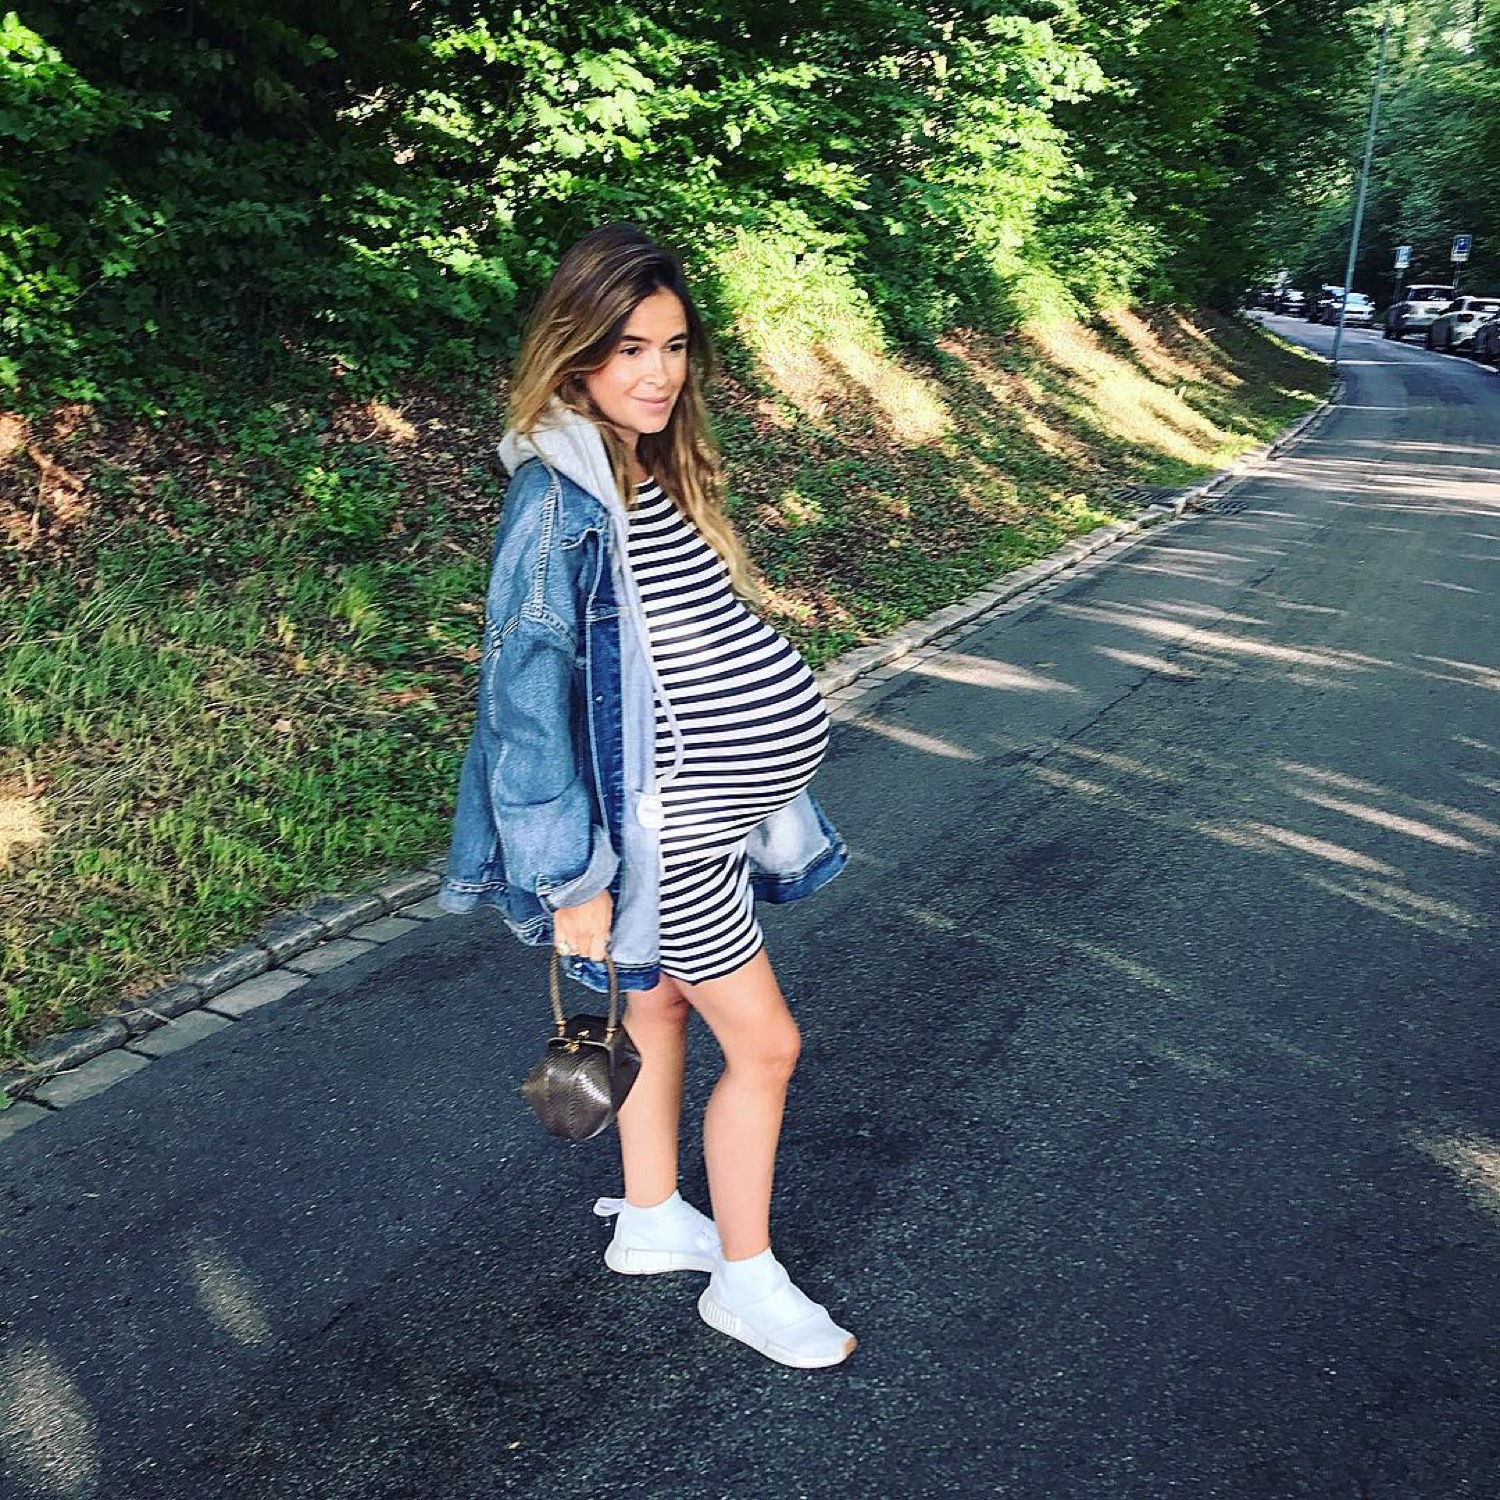 7e84a93bbd 10 Easy Tips for Effortlessly Chic Pregnancy Style - Savoir Flair